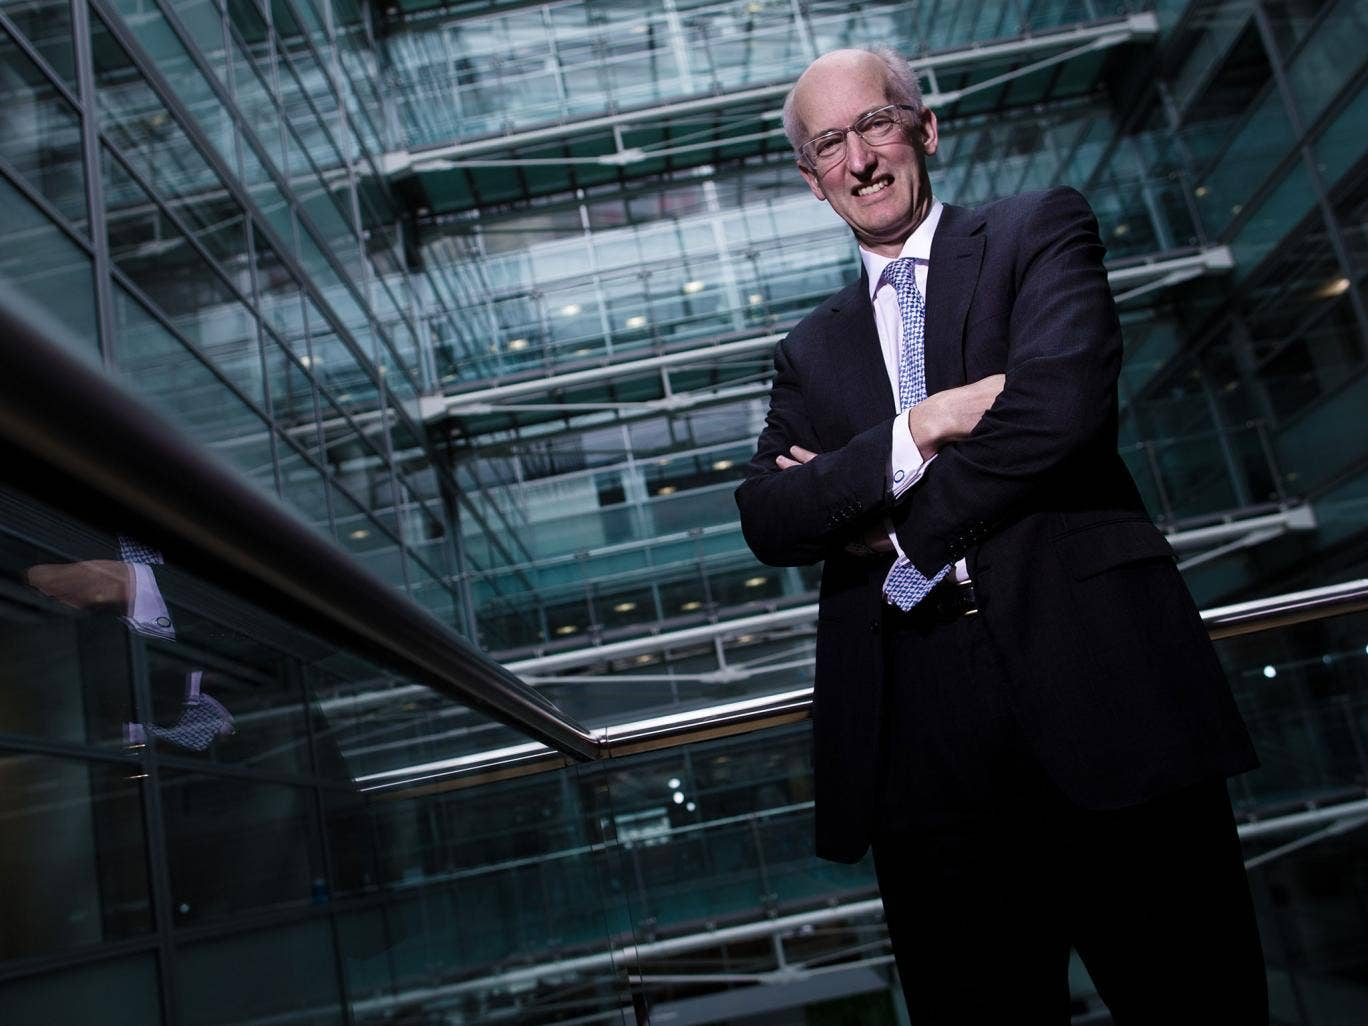 David Higgins, at the HS2 offices in Victoria, has a track record on delivering expensive, controversial projects